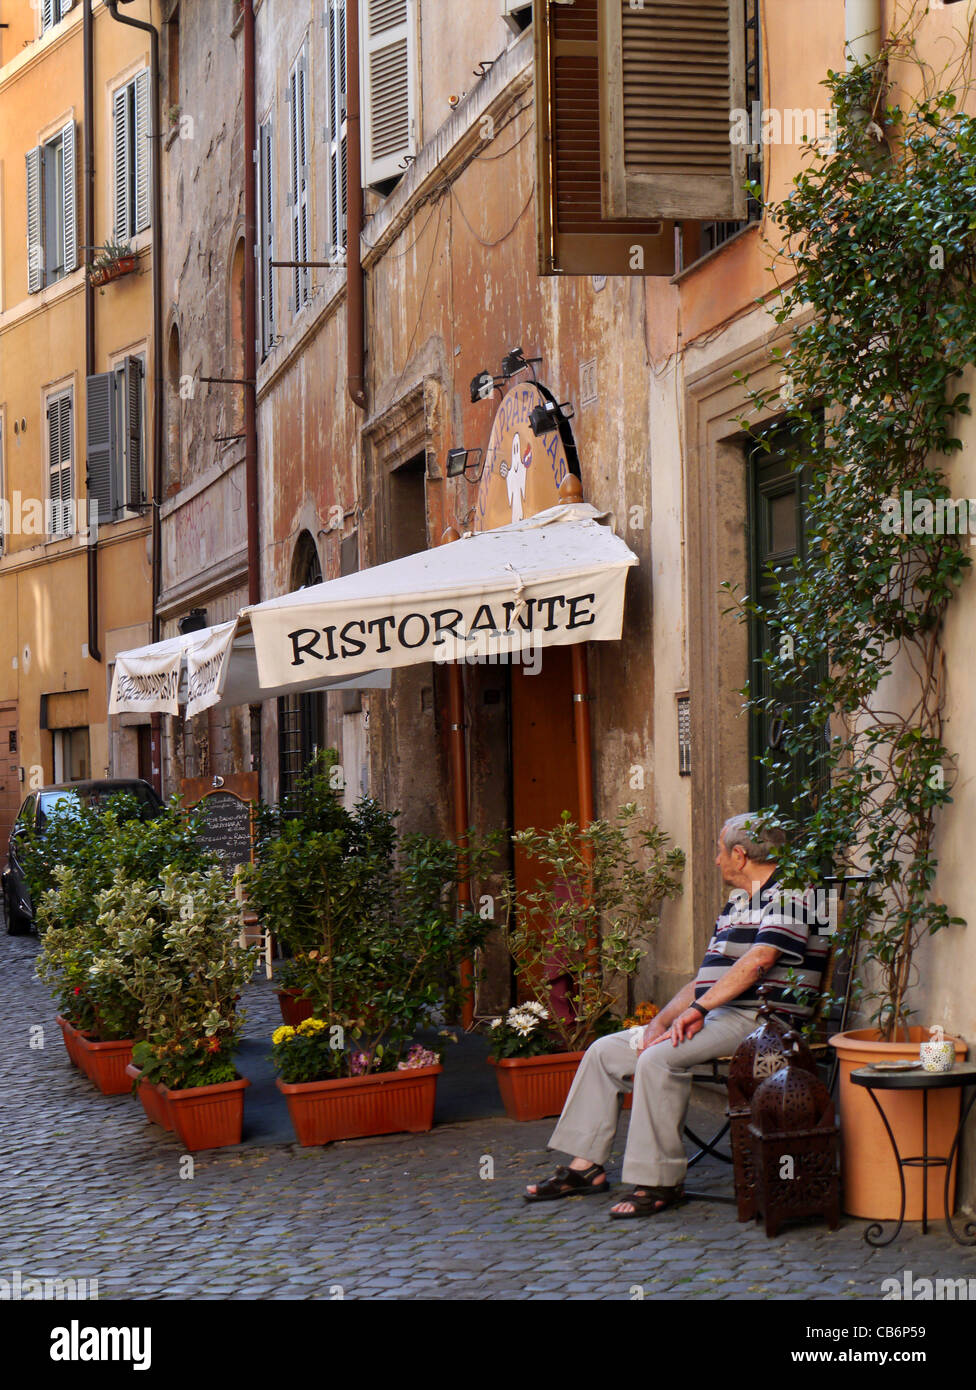 Medieval street in Rome with restaurant awning - Stock Image